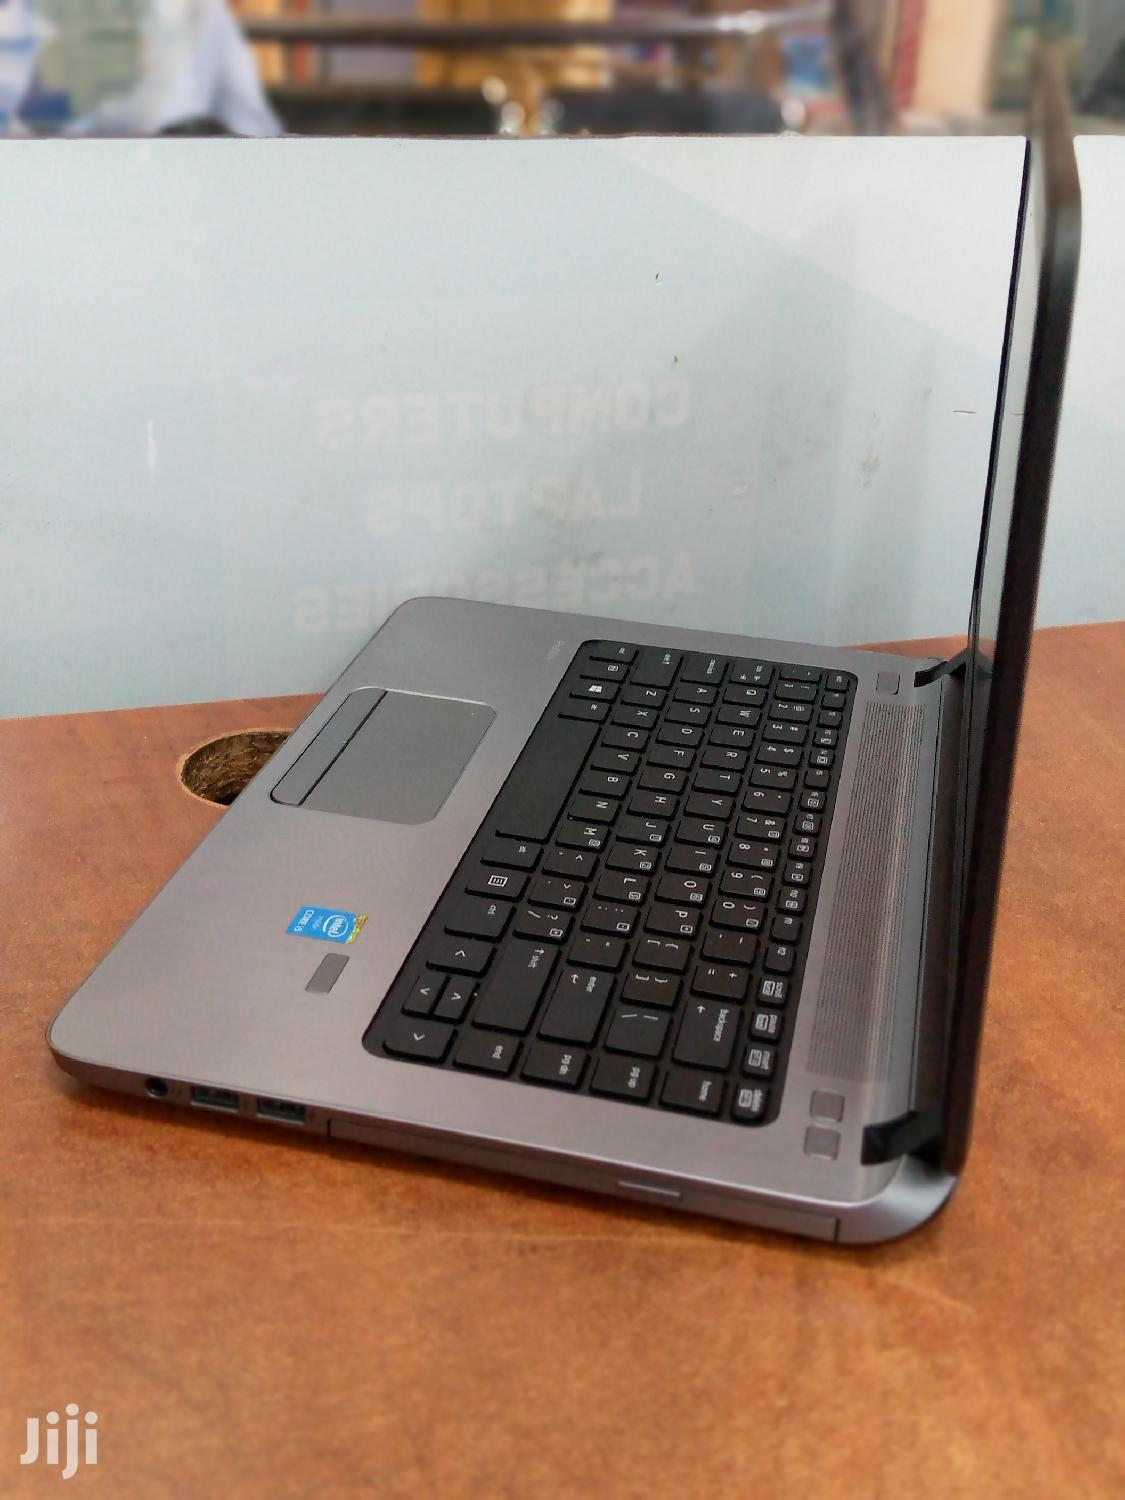 New Laptop HP ProBook 440 G2 8GB Intel Core i5 HDD 500GB | Laptops & Computers for sale in Kampala, Central Region, Uganda